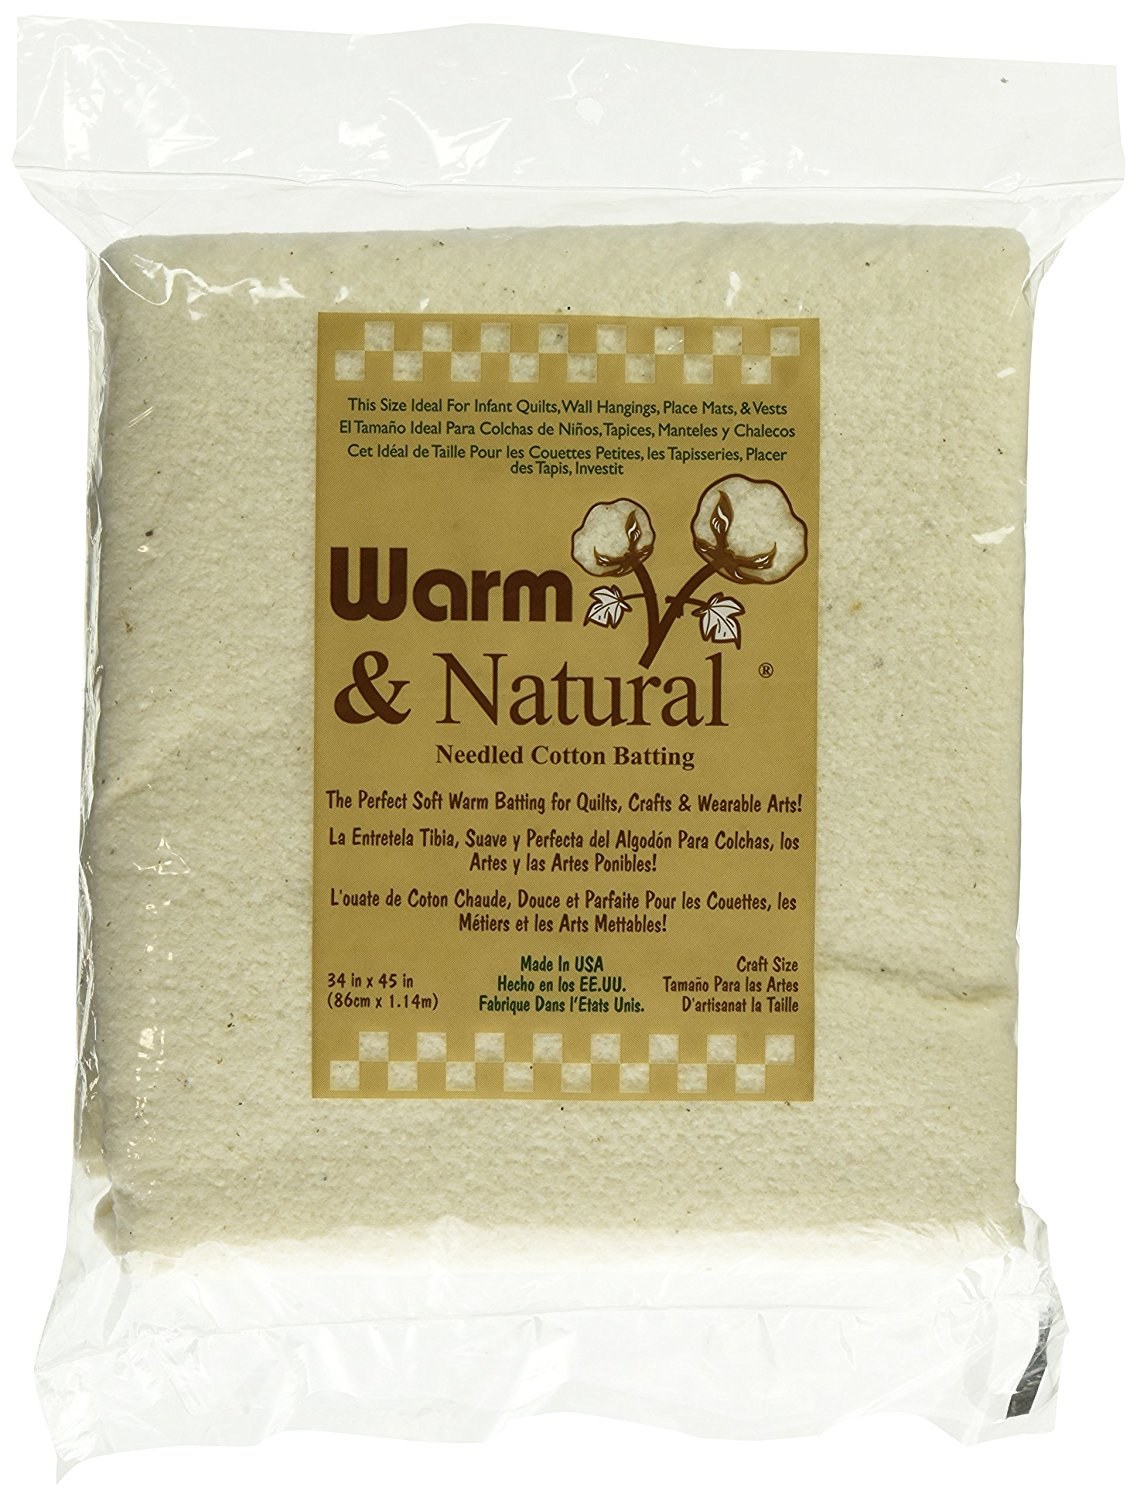 Warm & Natural Batting - Craft Size - 34